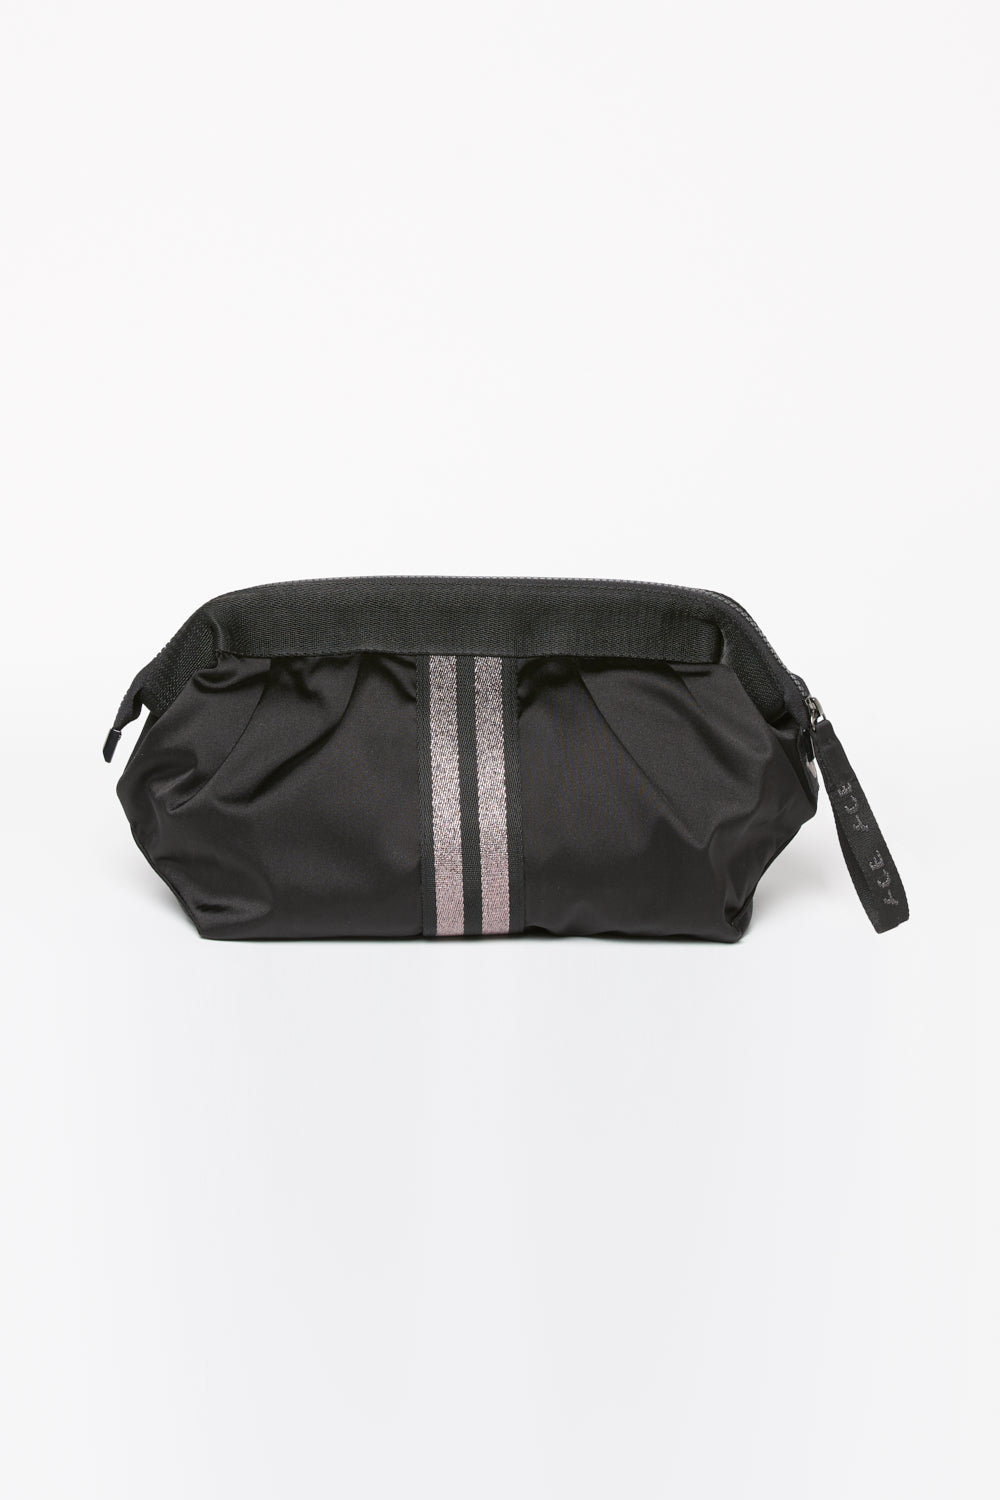 ACE Toiletry Bag Black front